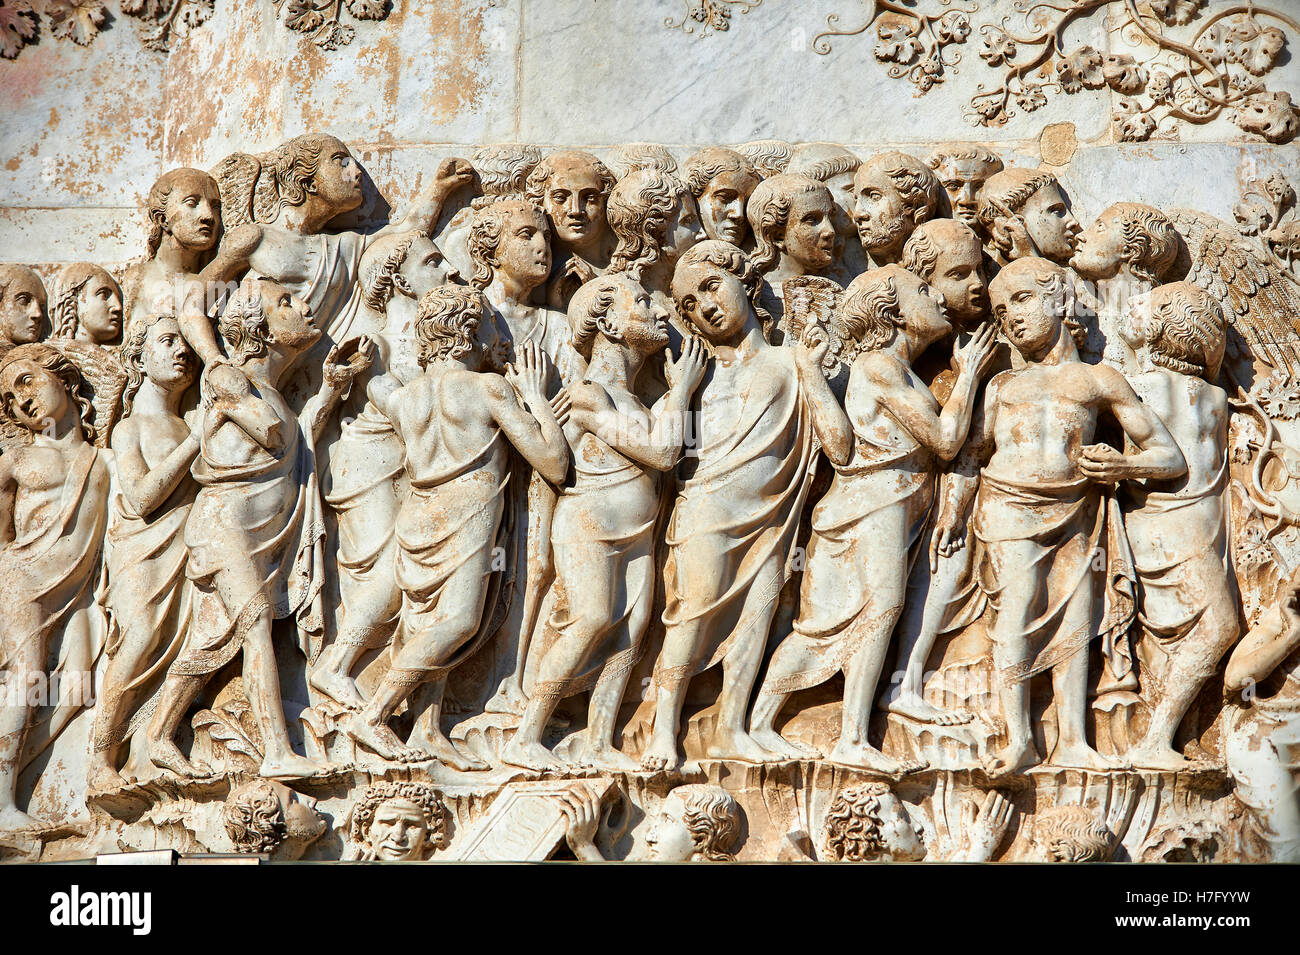 Bas-relief of the Last Judgment by Maitani, circa1310, Tuscan Gothic,  facade Orvieto Duomo Cathedral, Umbria, Italy - Stock Image